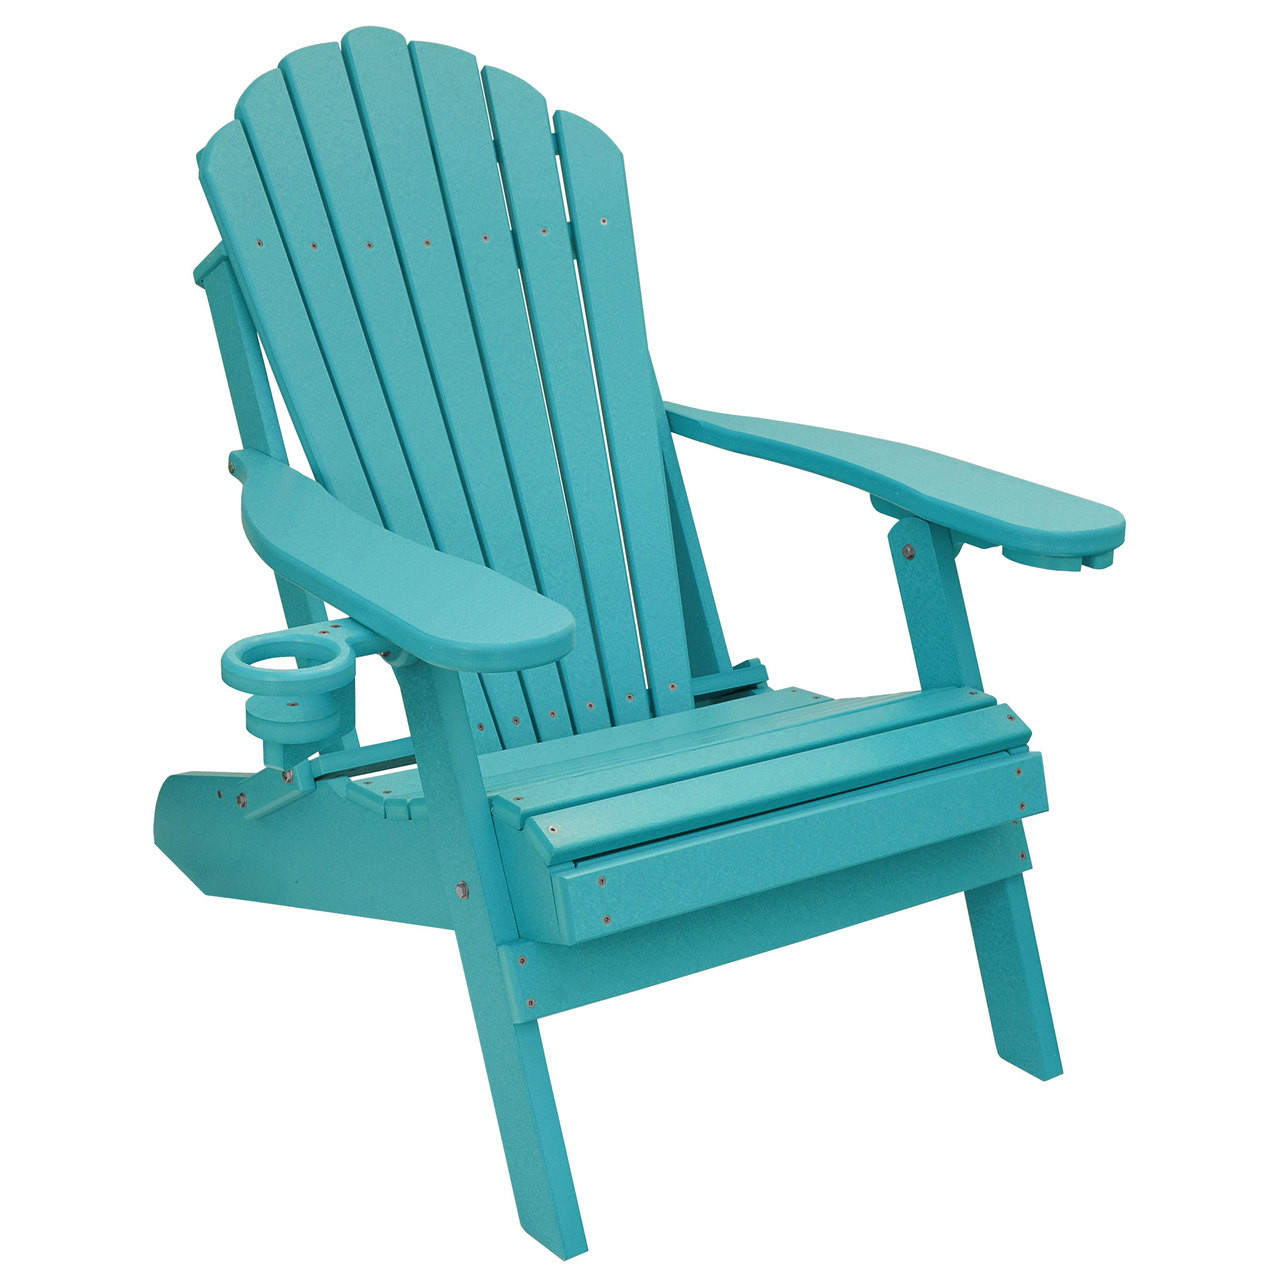 Arondyke Chairs Outer Banks Deluxe Oversized Poly Lumber Folding Adirondack Chair With Cup Holders